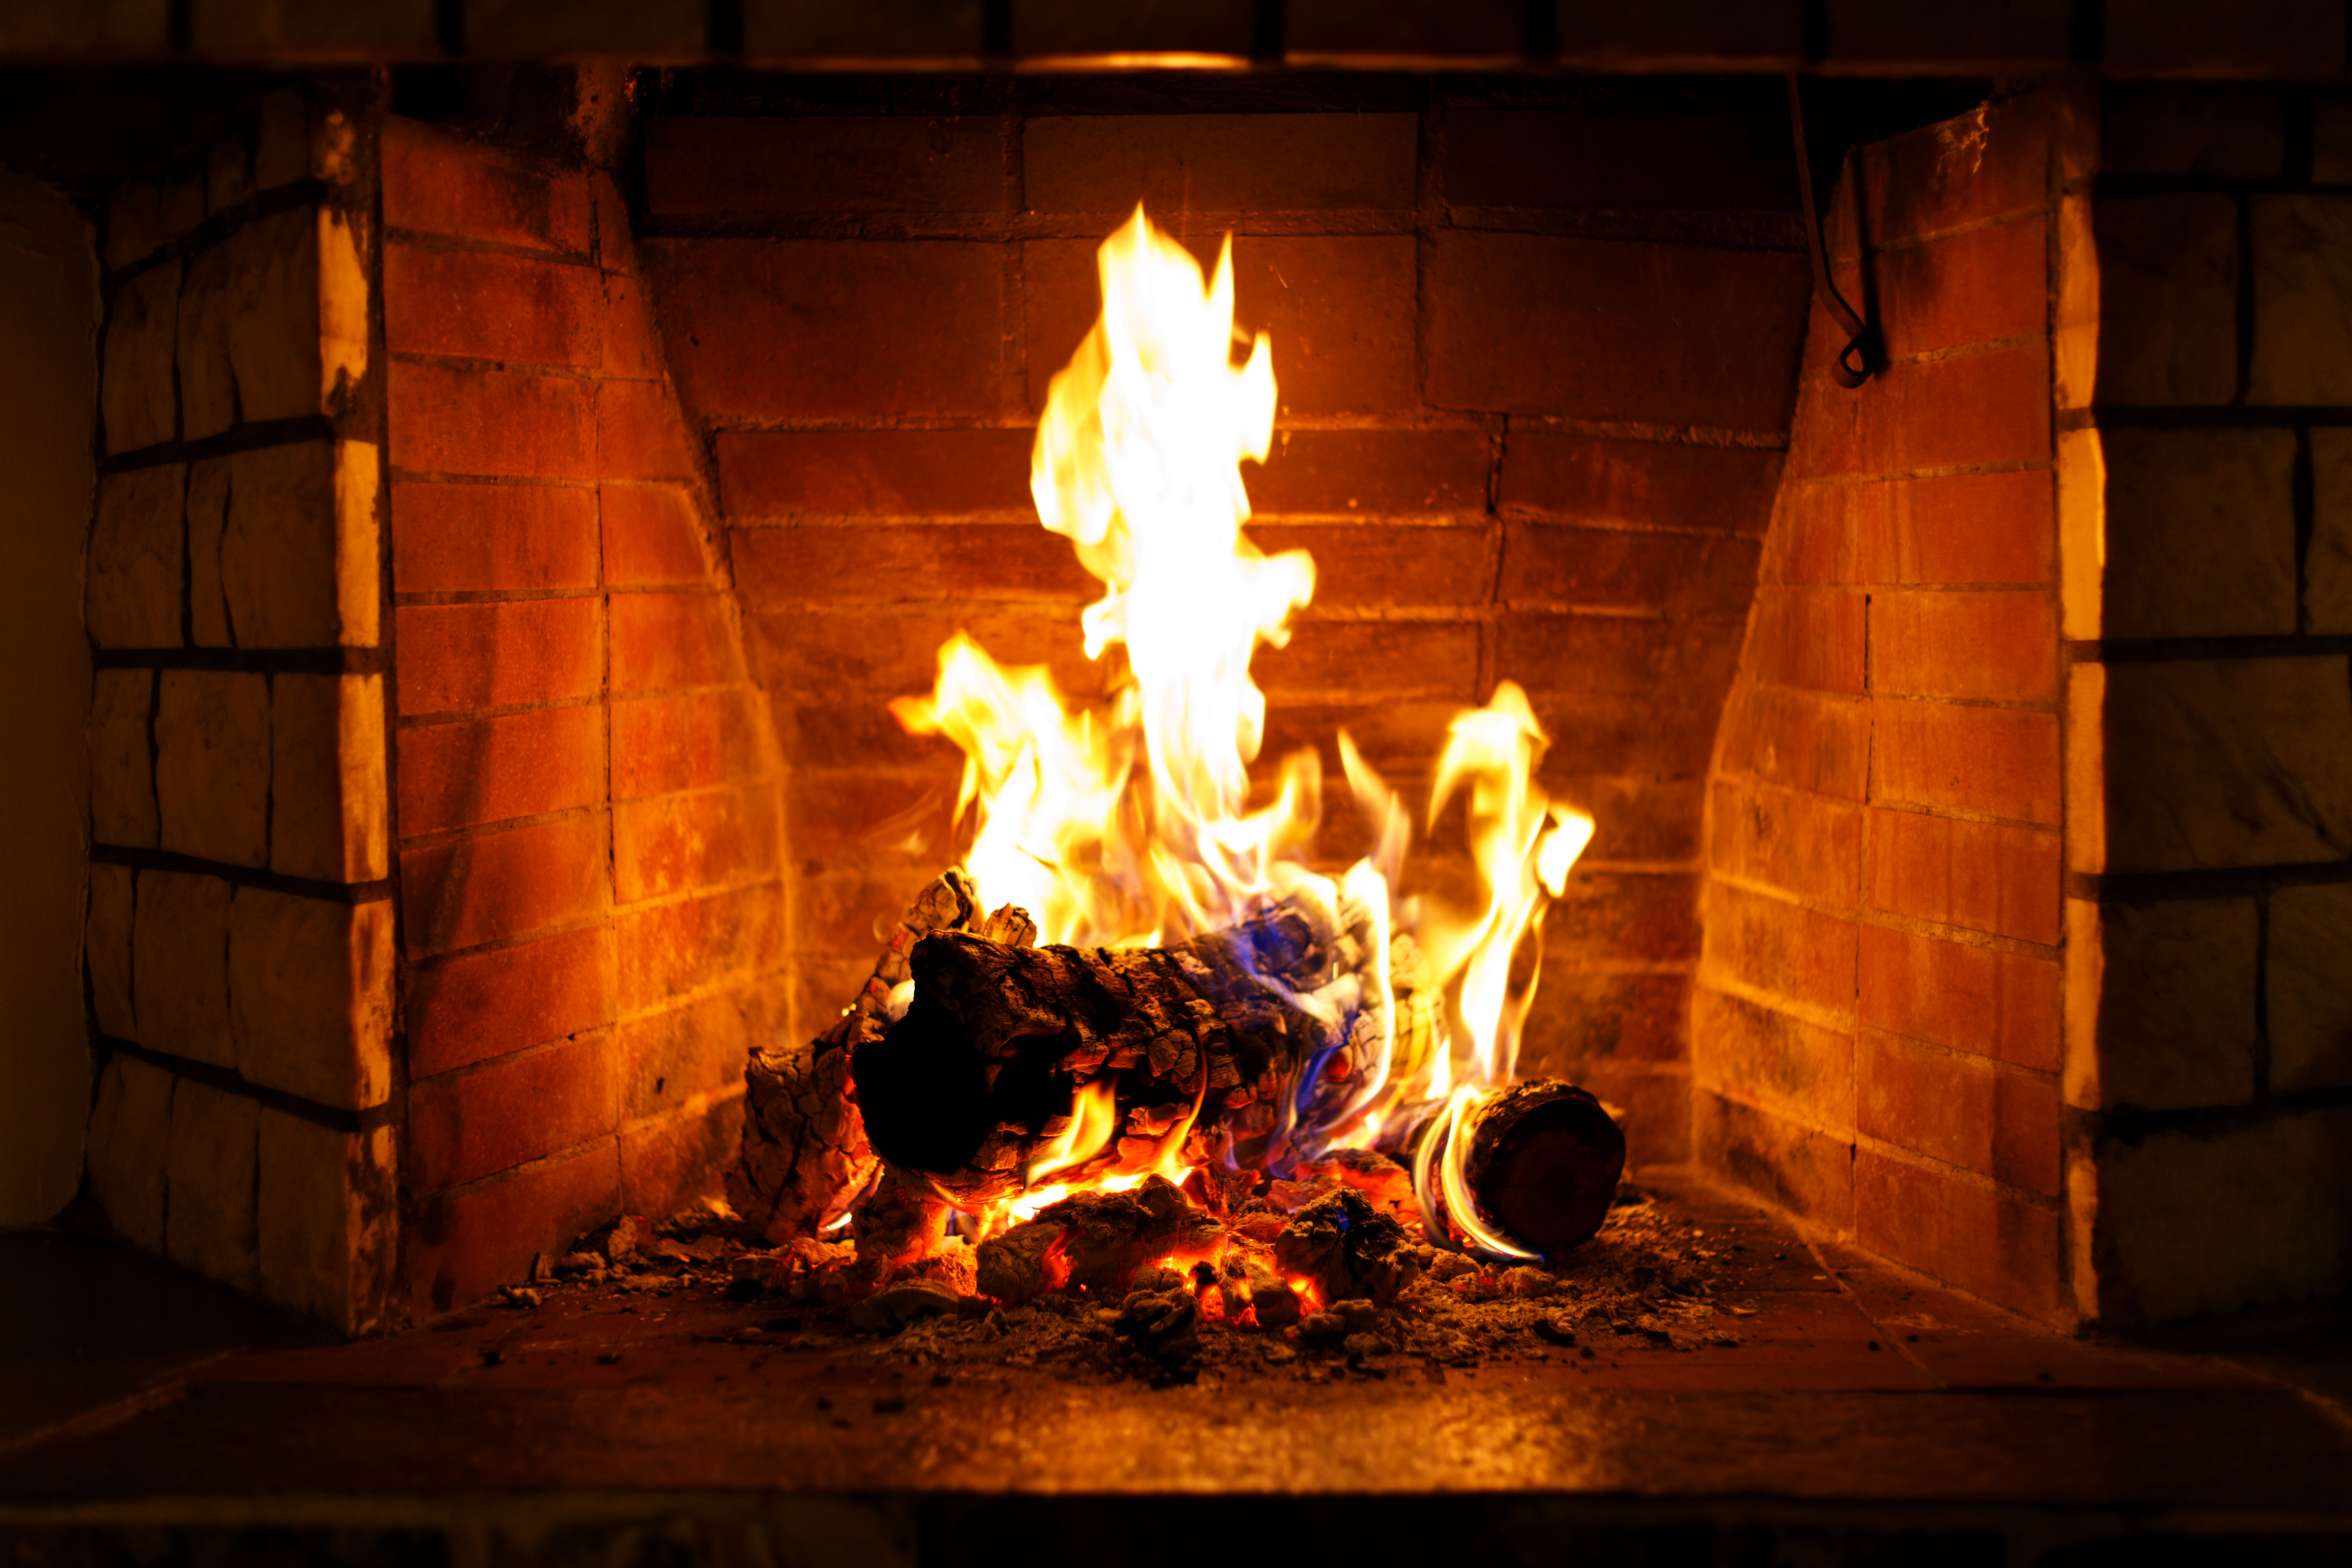 Fireplace Fragrance Oil How To Get Fireplace Ash Smell Out Of The Room Home Guides Sf Gate